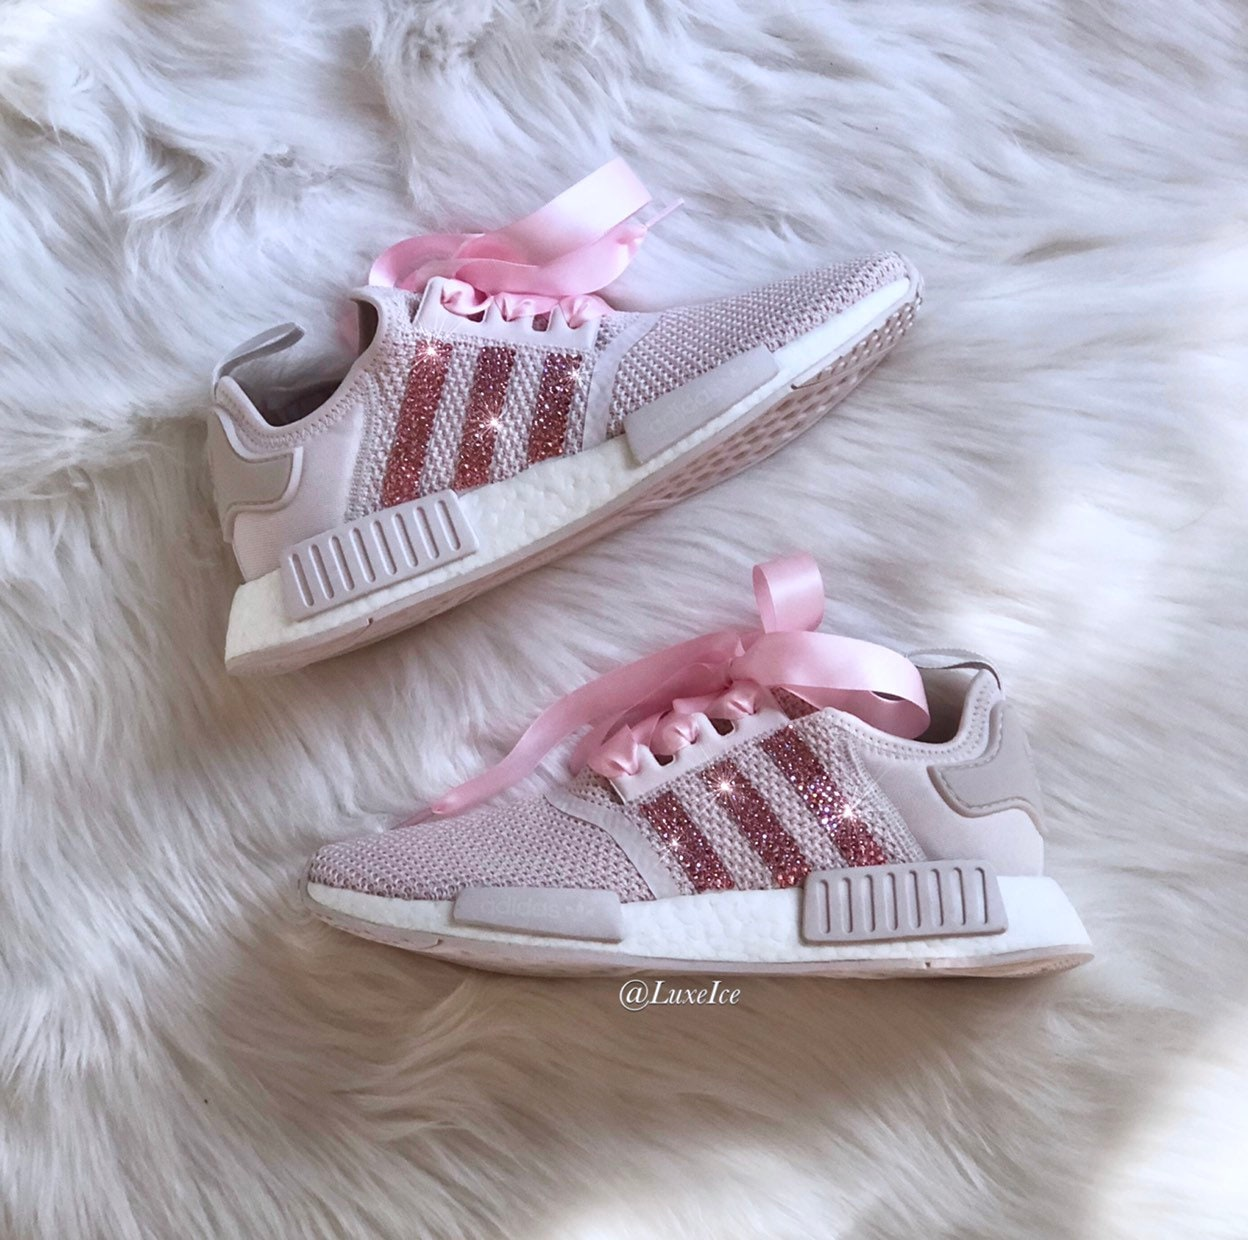 3f1142f12ad3 Swarovski Adidas NMD R1 Casual Shoes Orchid Tint White